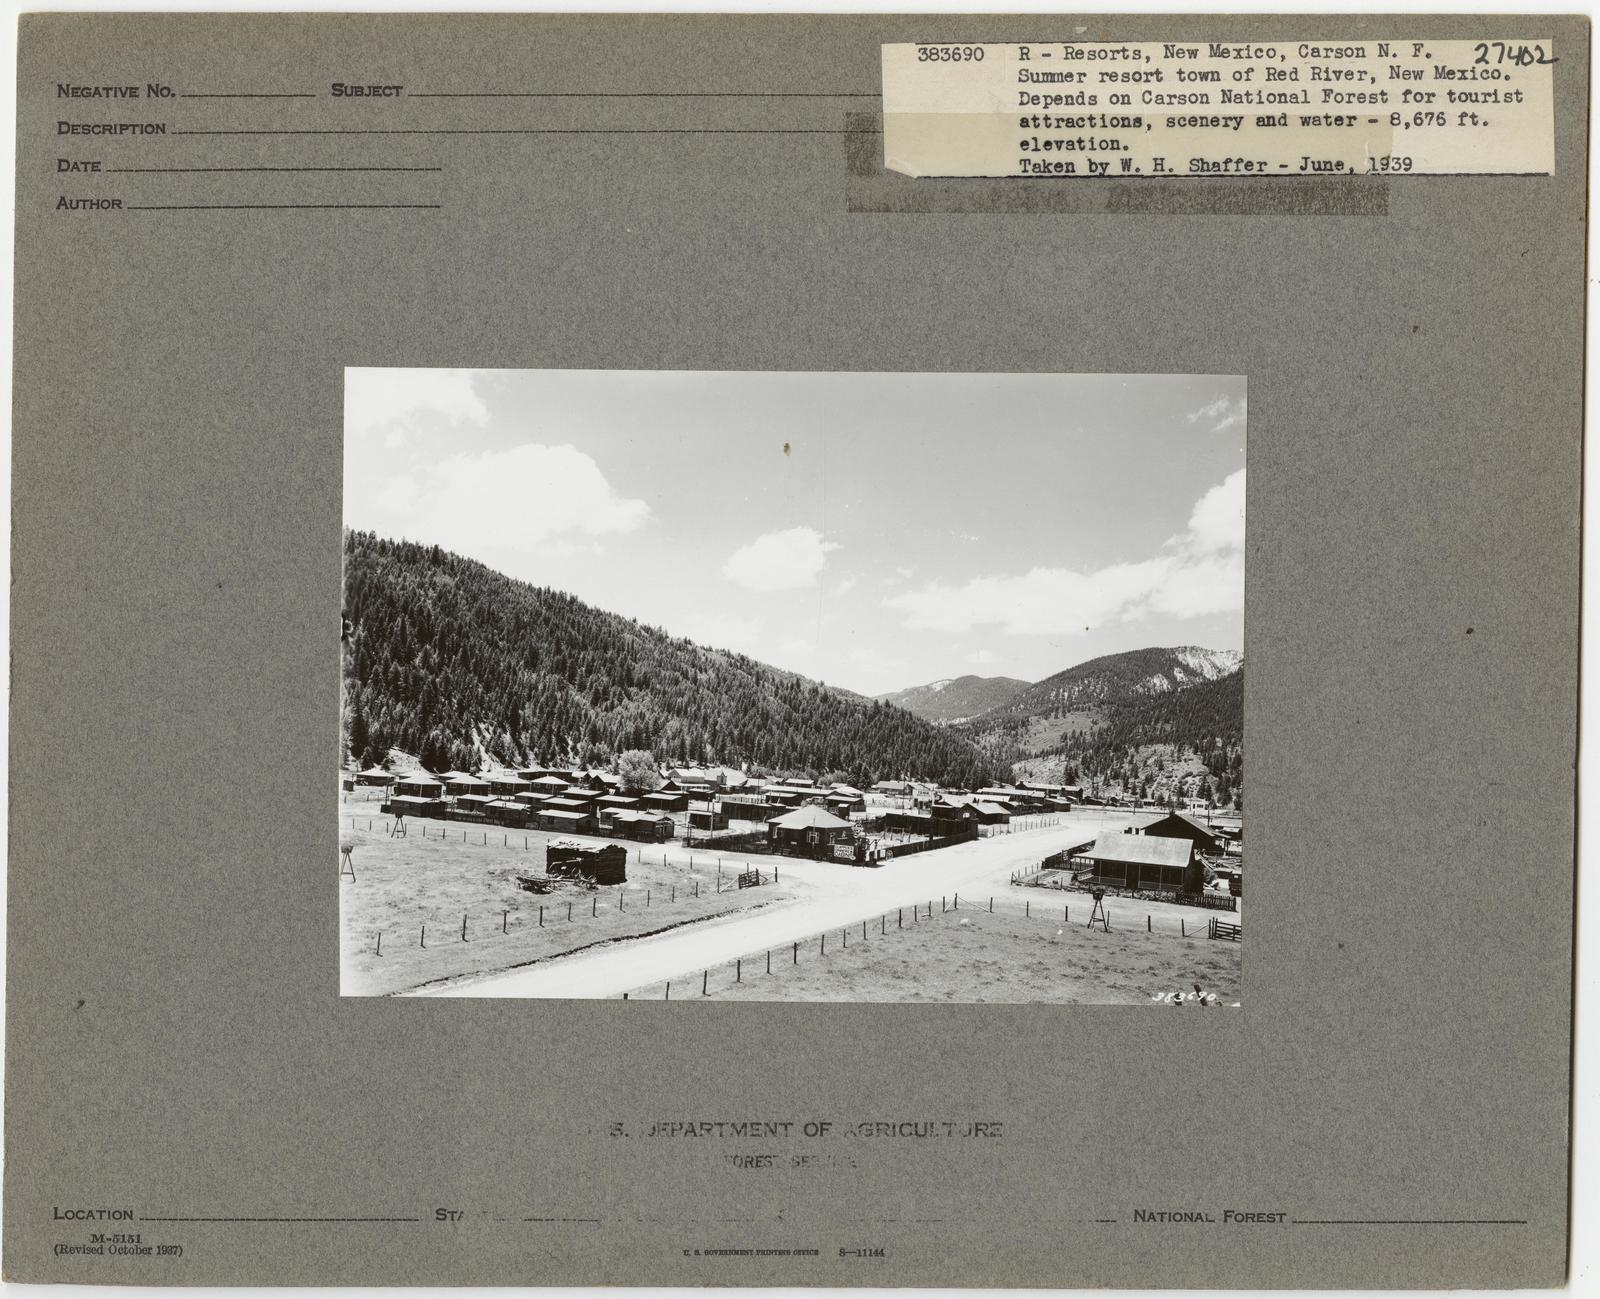 Resorts and Other Dwellings - New Mexico